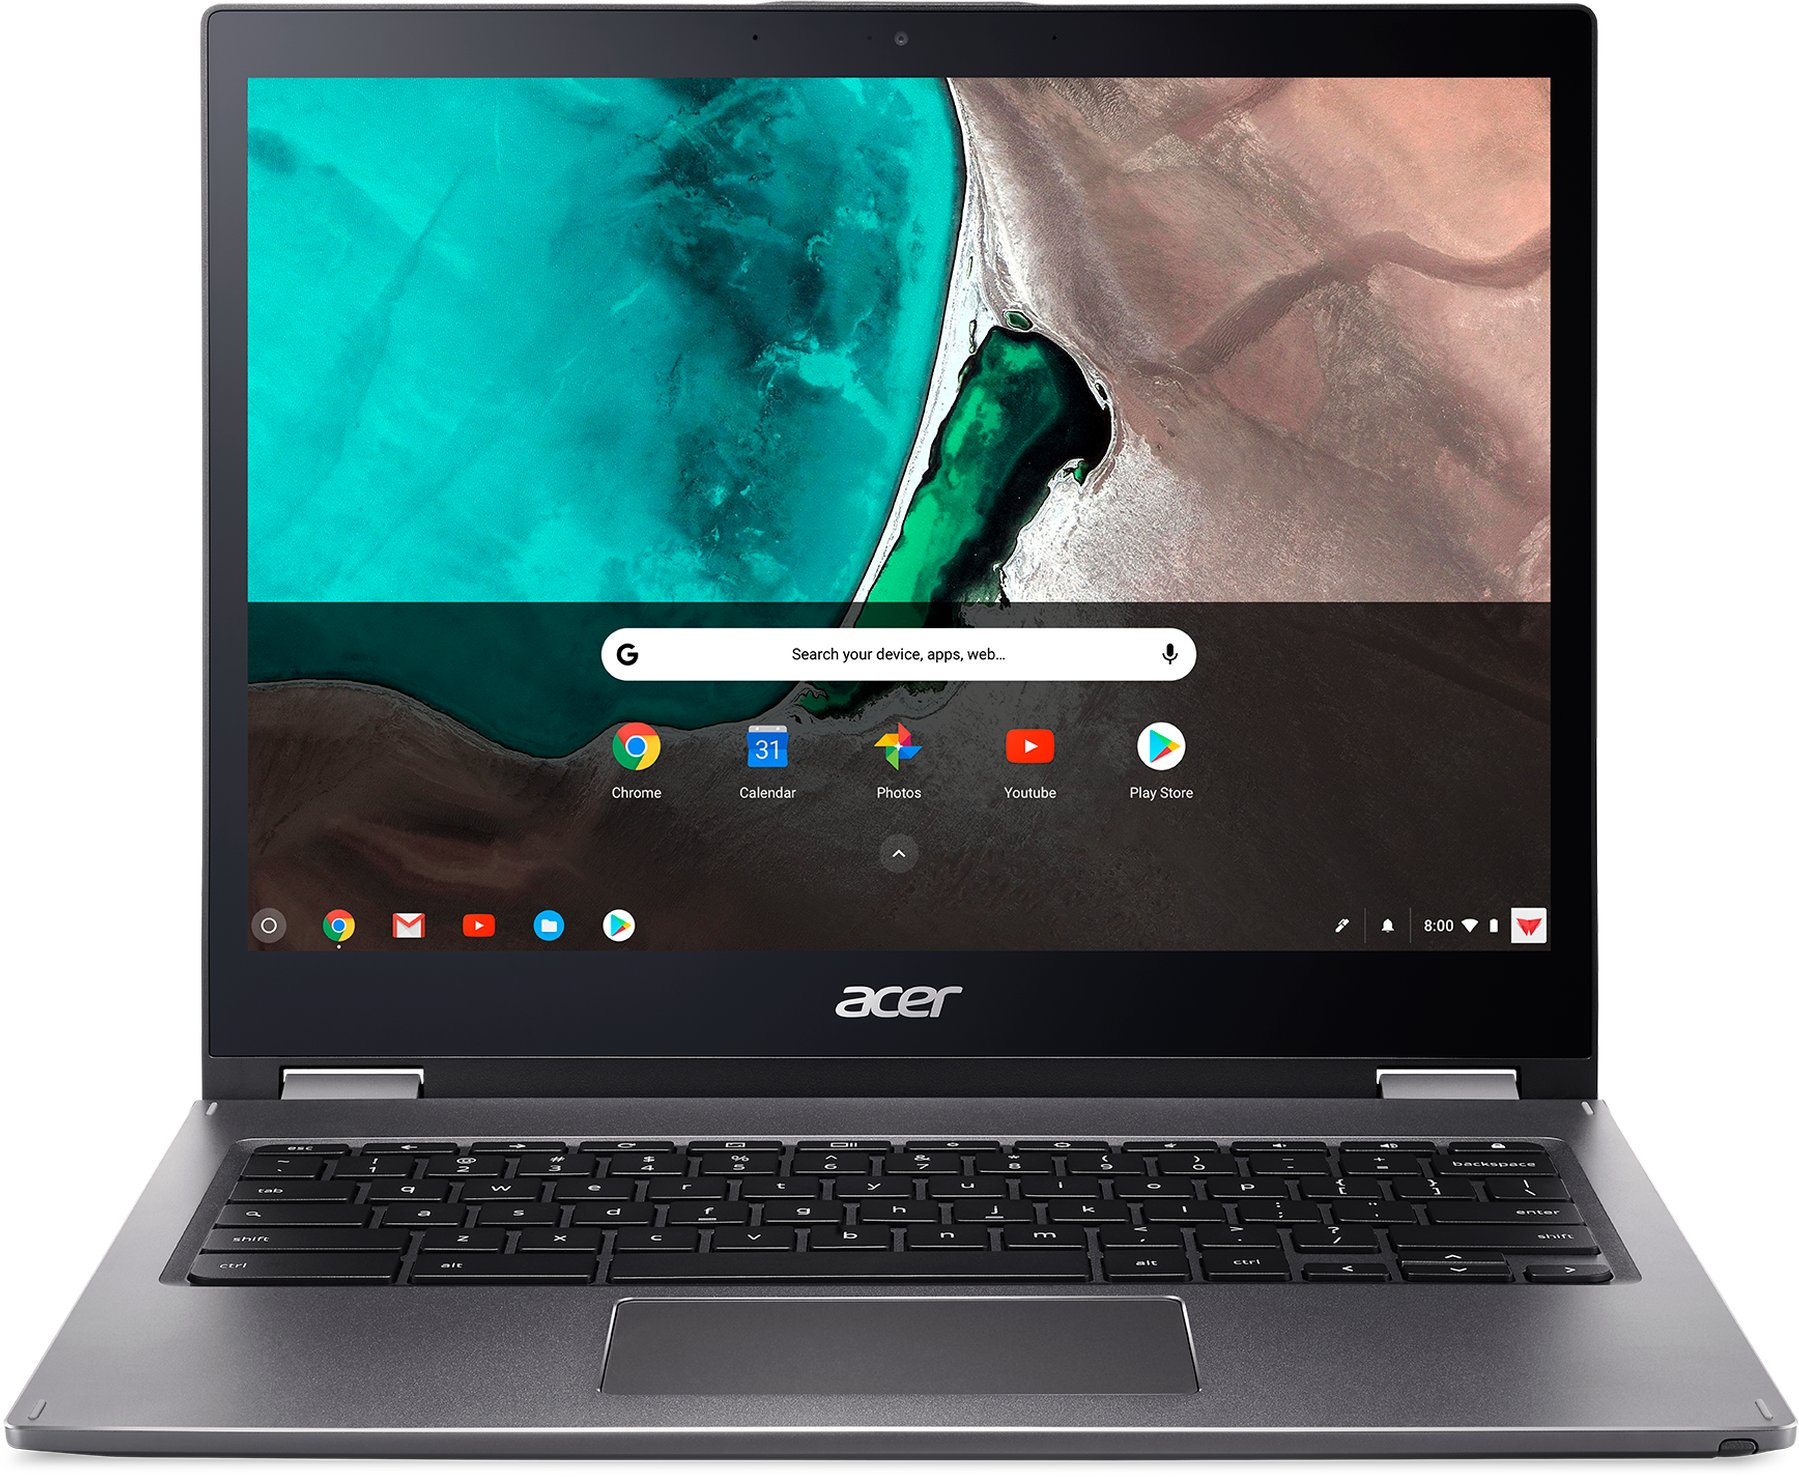 ACER Chromebook Spin 13 (CP713-1WN-59GM) - i5-8250U@1.6GHz, 13.5